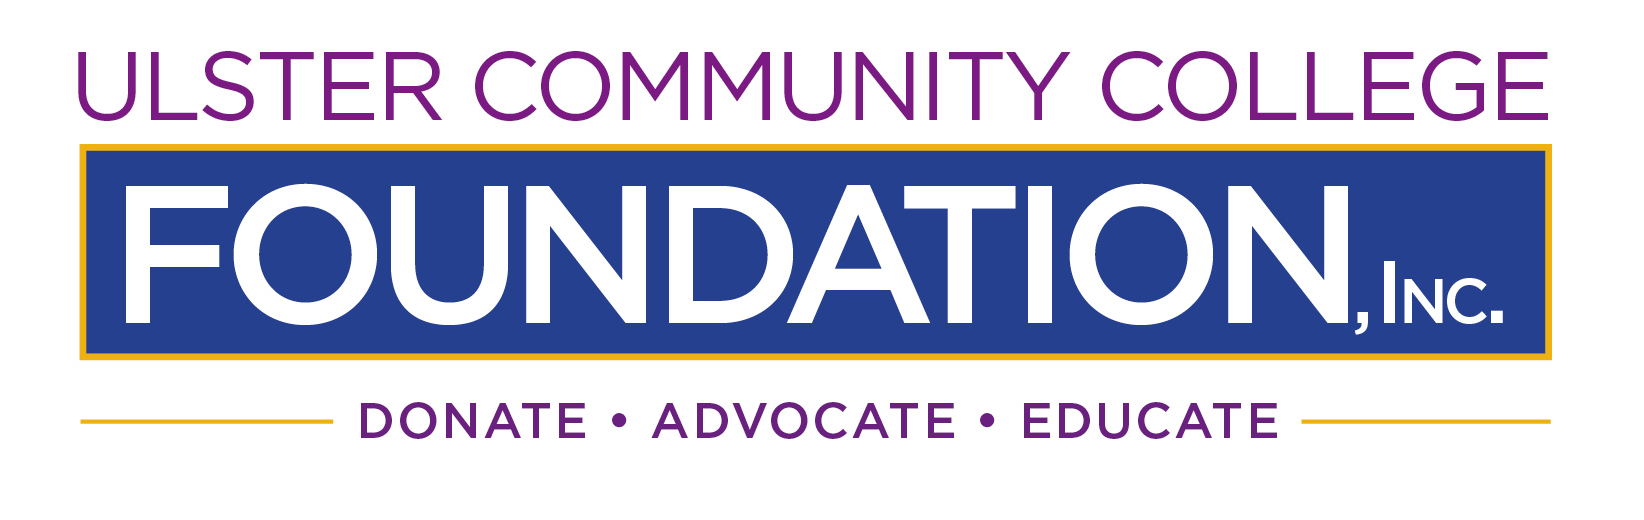 Ulster Community College Foundation logo